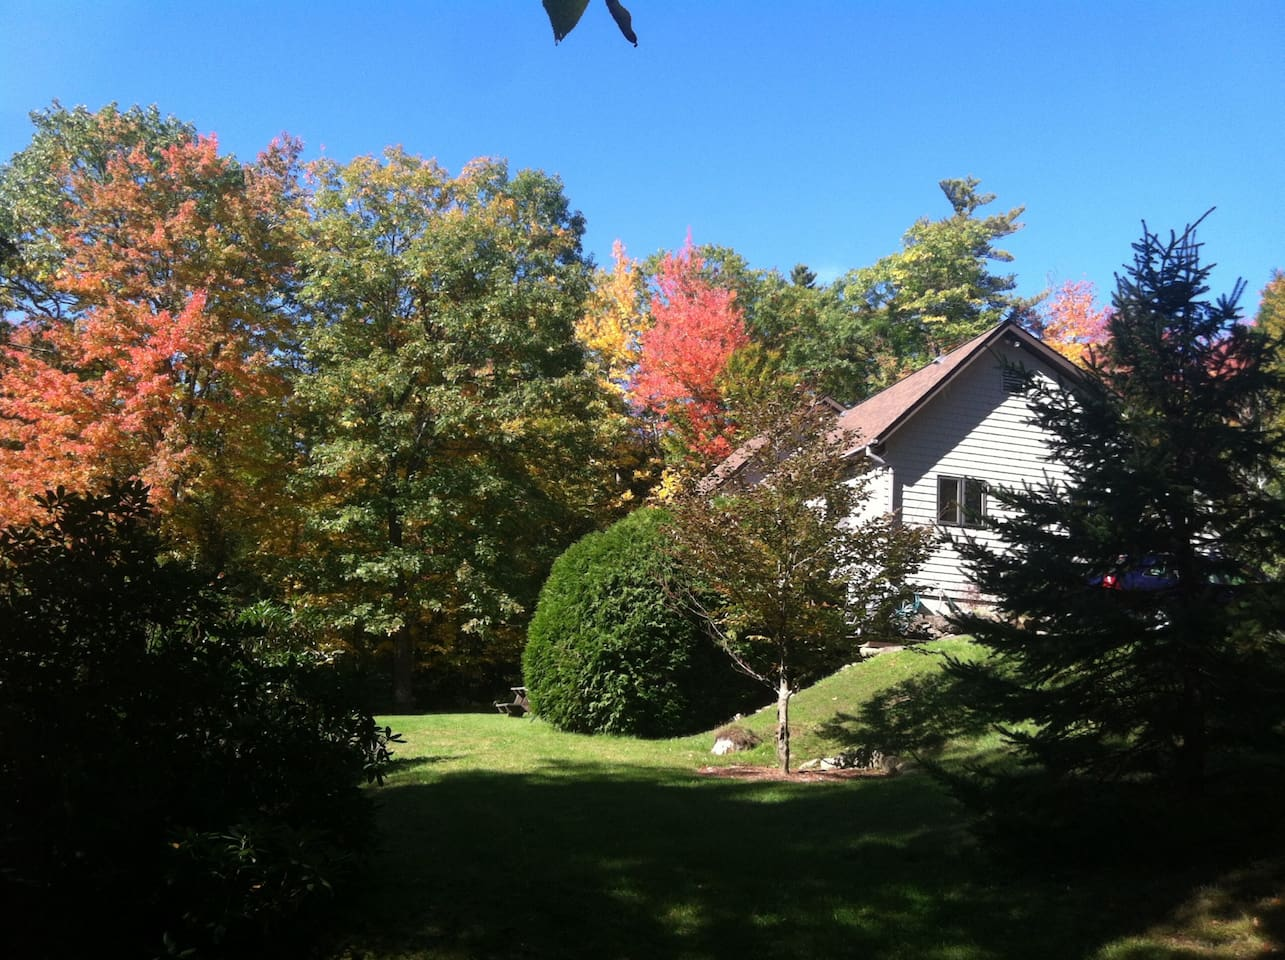 There is nothing like fall in New Hampshire